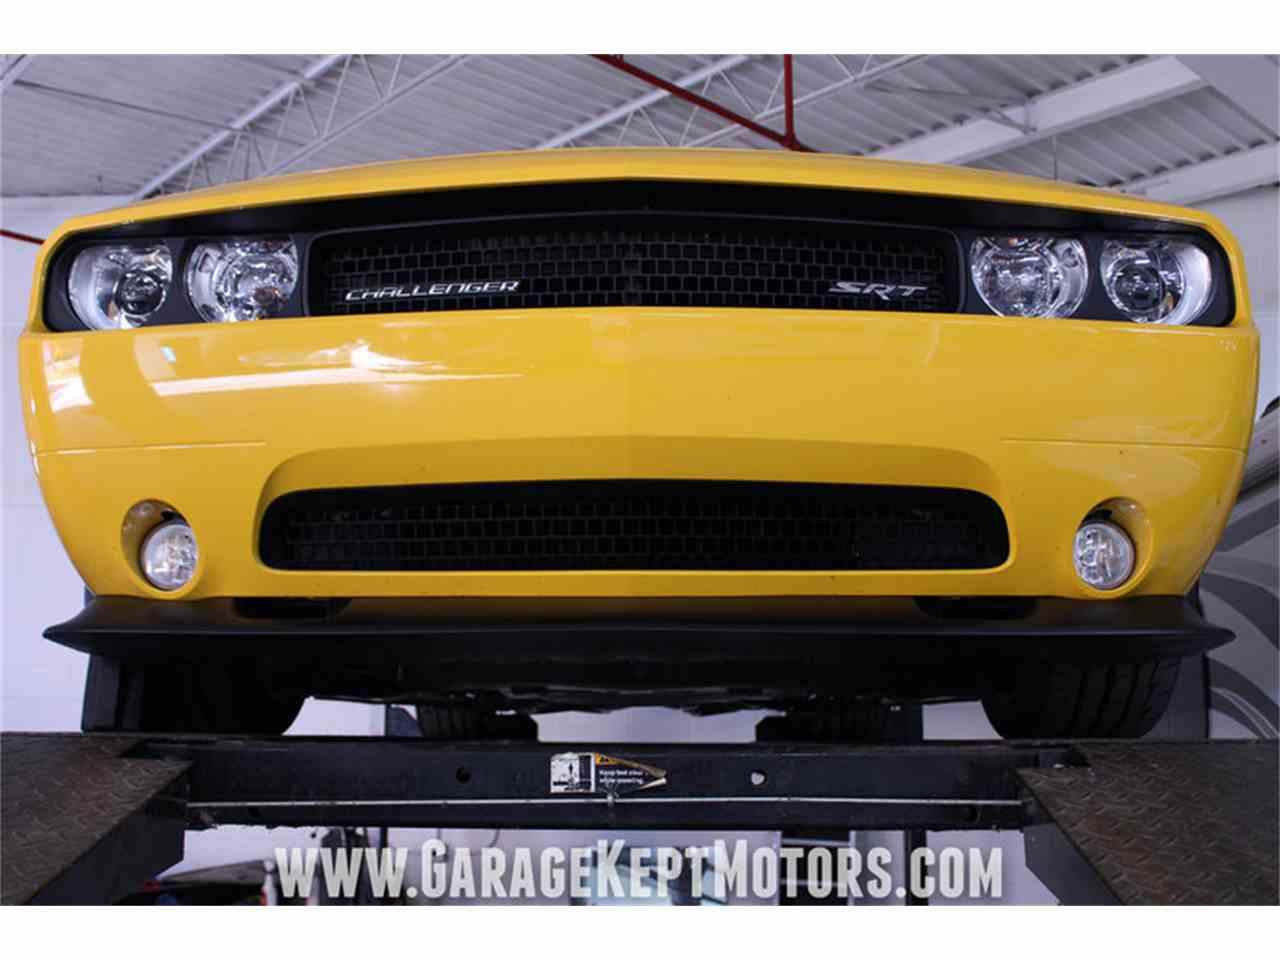 Large Picture of 2012 Challenger SRT8 392 Yellow Jacket located in Grand Rapids Michigan - $36,500.00 Offered by Garage Kept Motors - MAXR